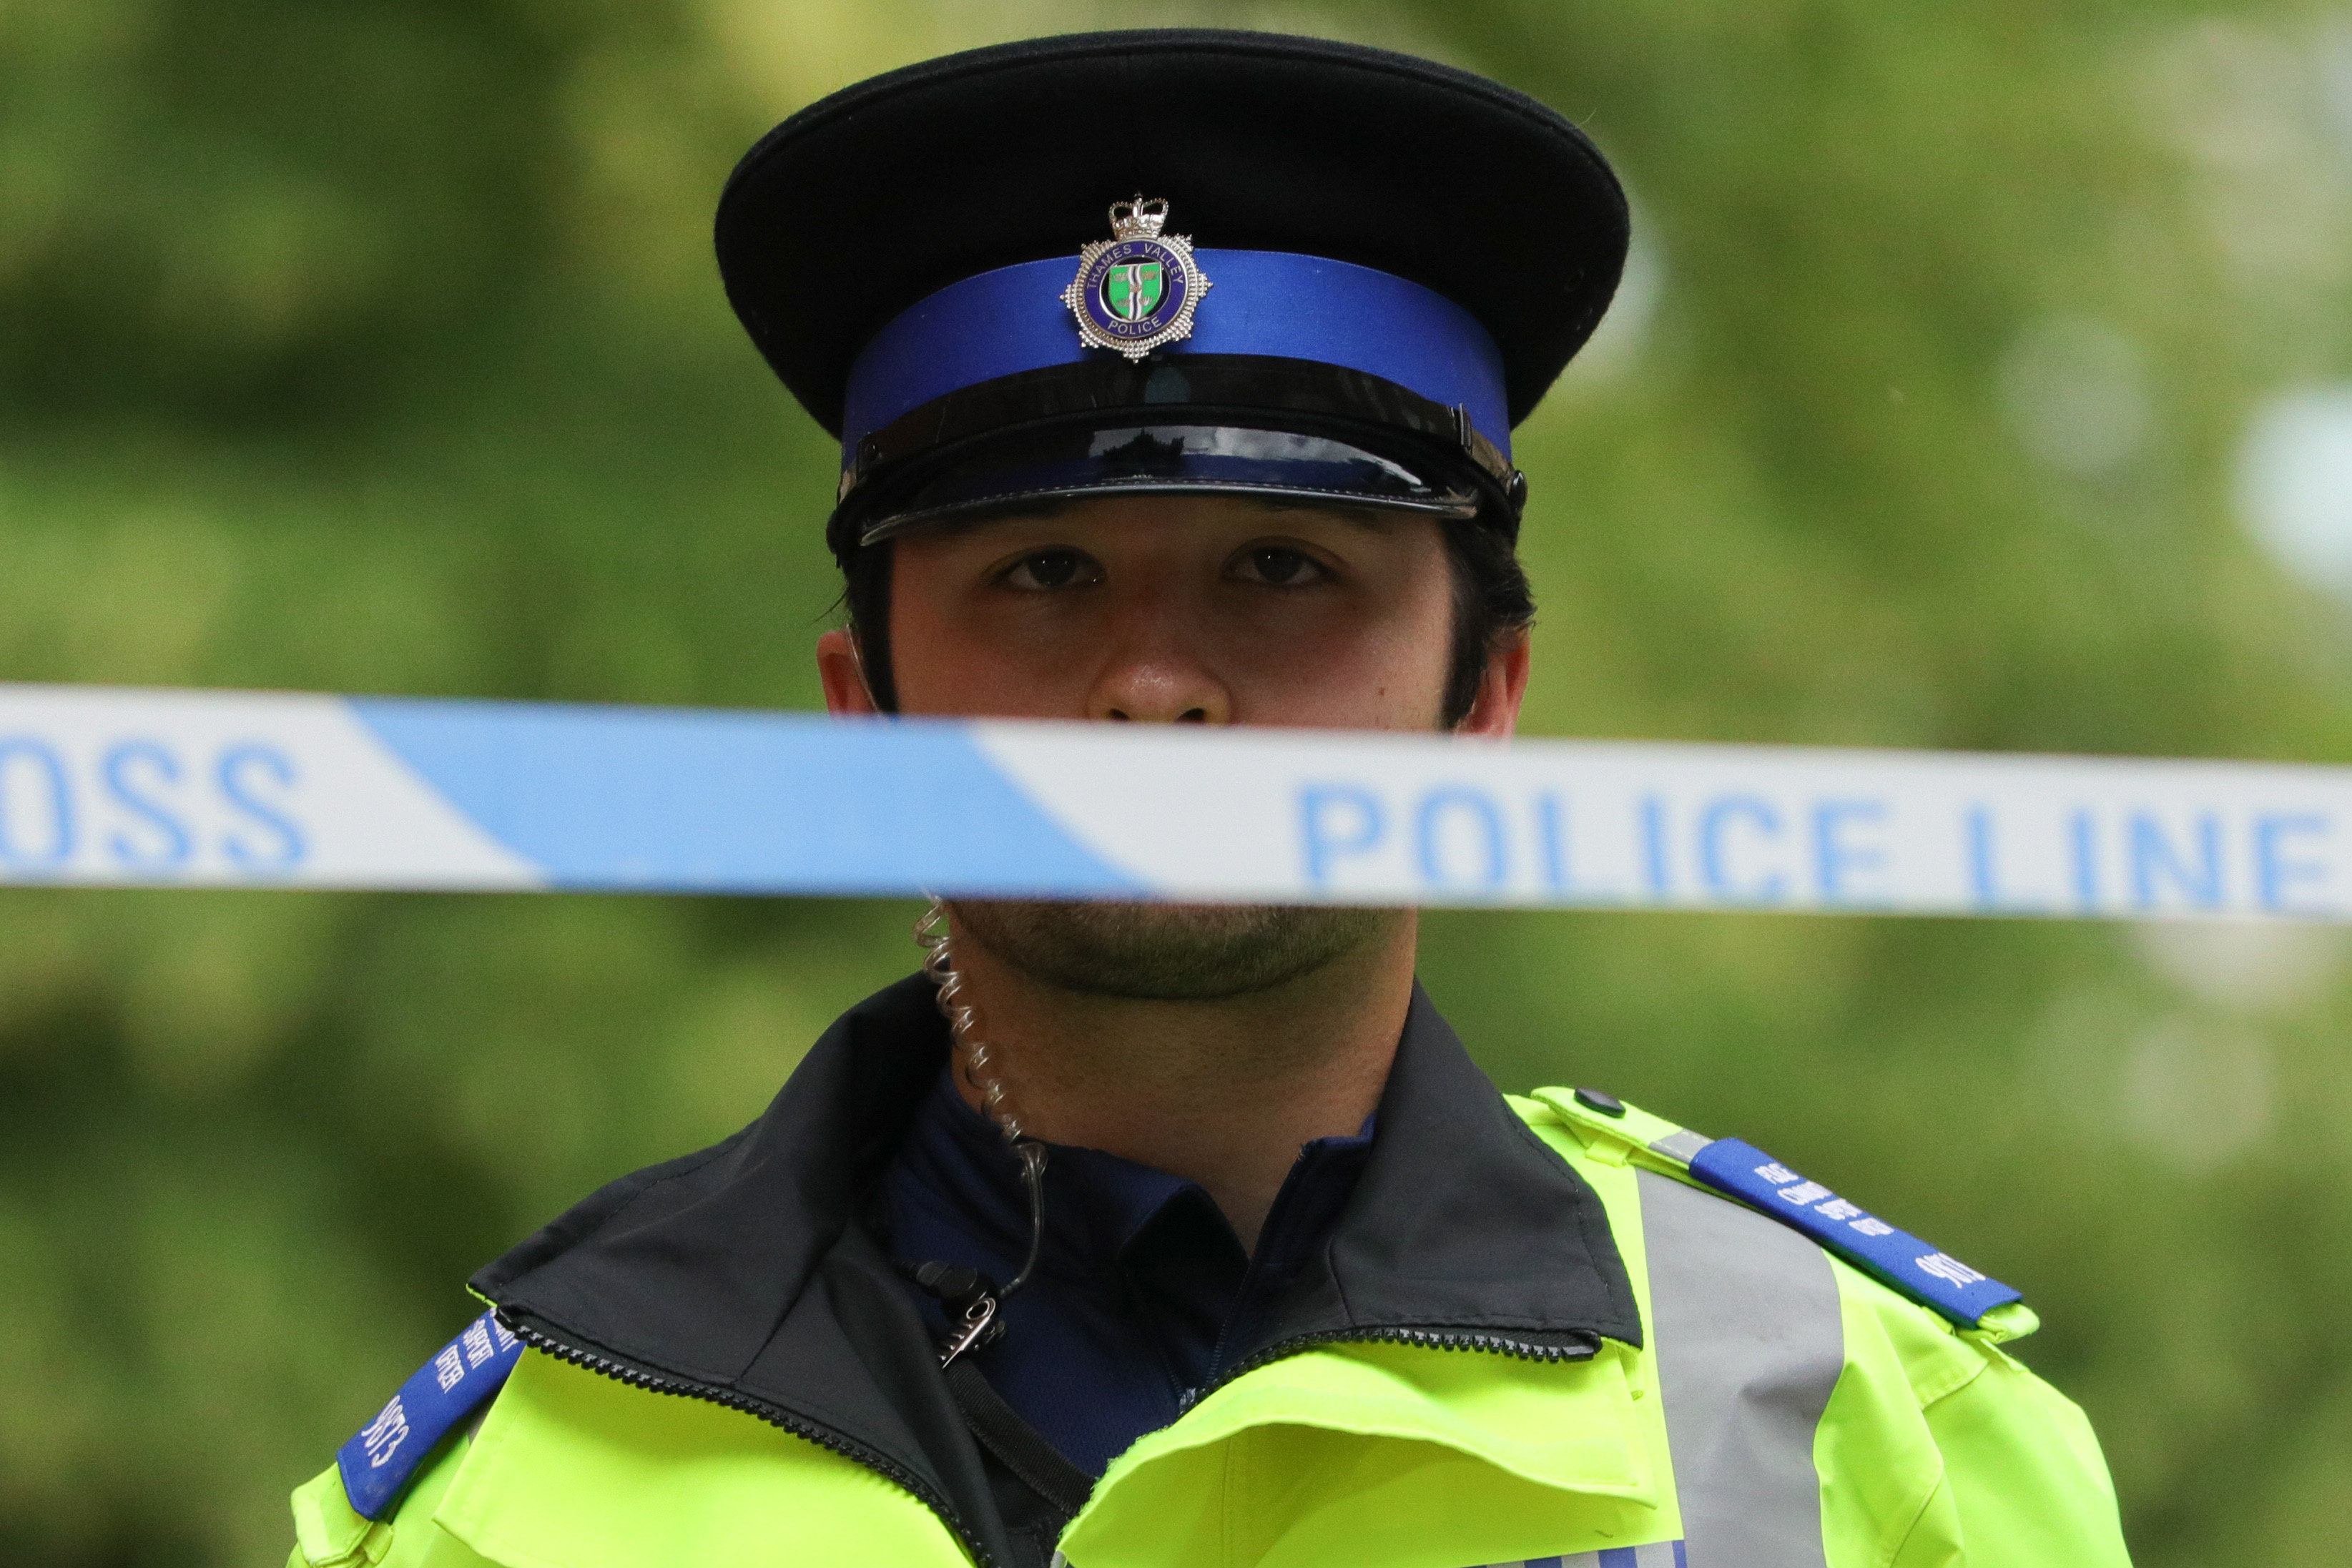 """READING , June 21, 2020  -- A police officer stands behind a police cordon at an entrance to Forbury Gardens where stabbings took place in Reading, Britain, on June 21, 2020. Britain's counter-terrorism police said Sunday that the stabbing incident taking place in southern England's town of Reading on Saturday night """"has now been declared a terrorist incident.""""(Photo by Tim Ireland/Xinhua via Getty) (Xinhua/ via Getty Images)"""